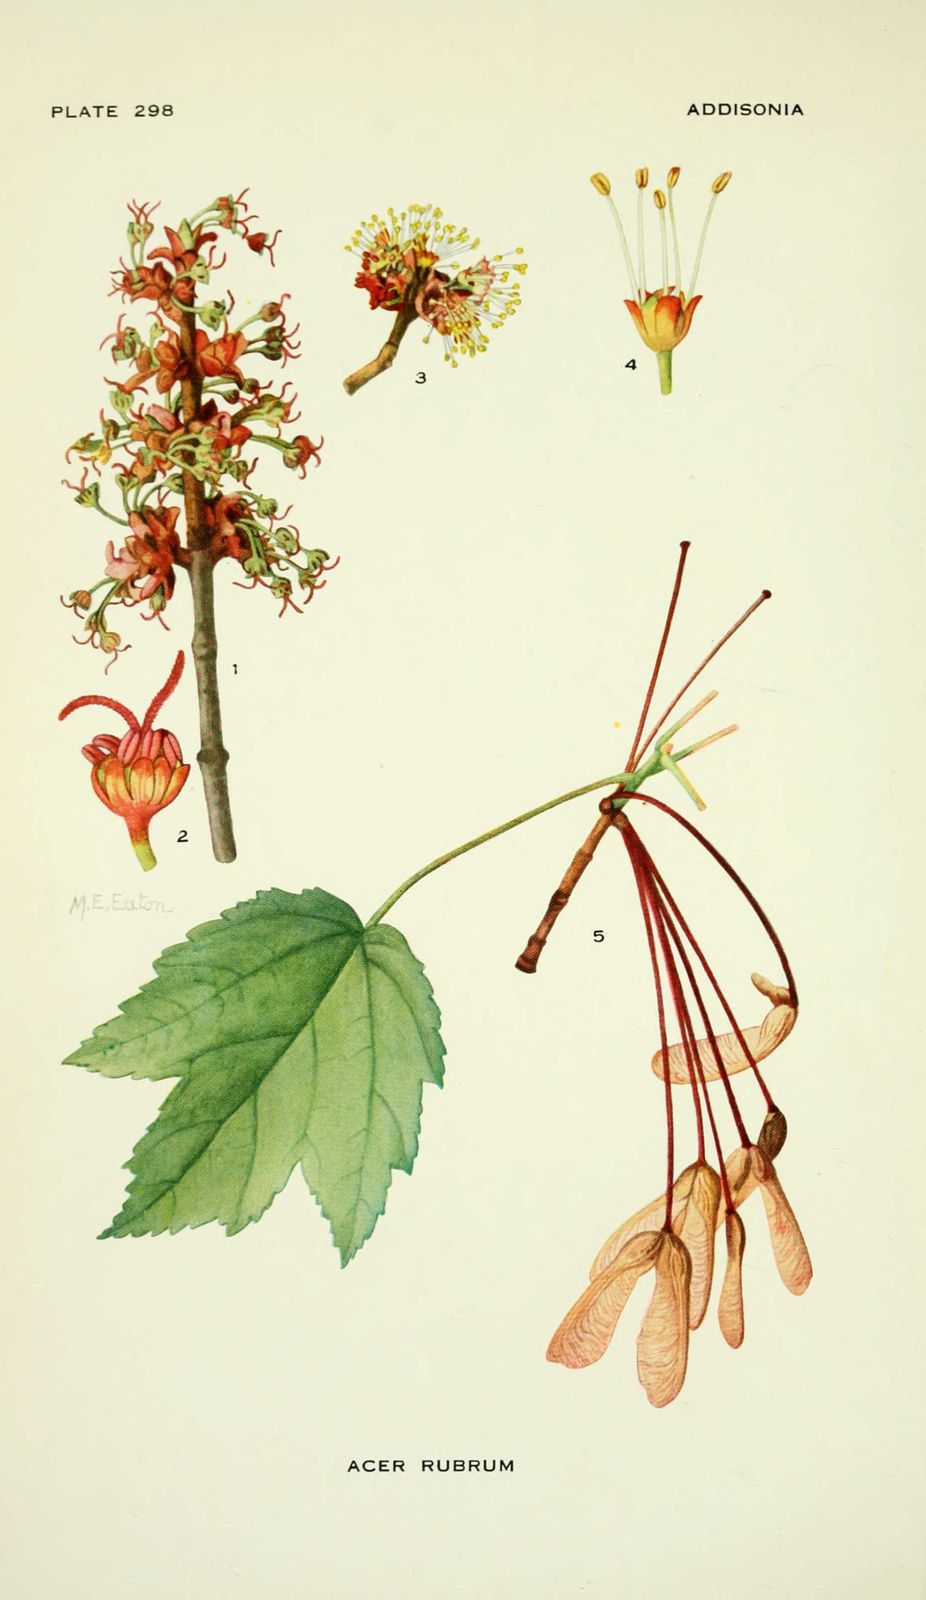 Dessin illustration flore acer rubrum erable rouge erable du canada education - Erable rouge du canada ...